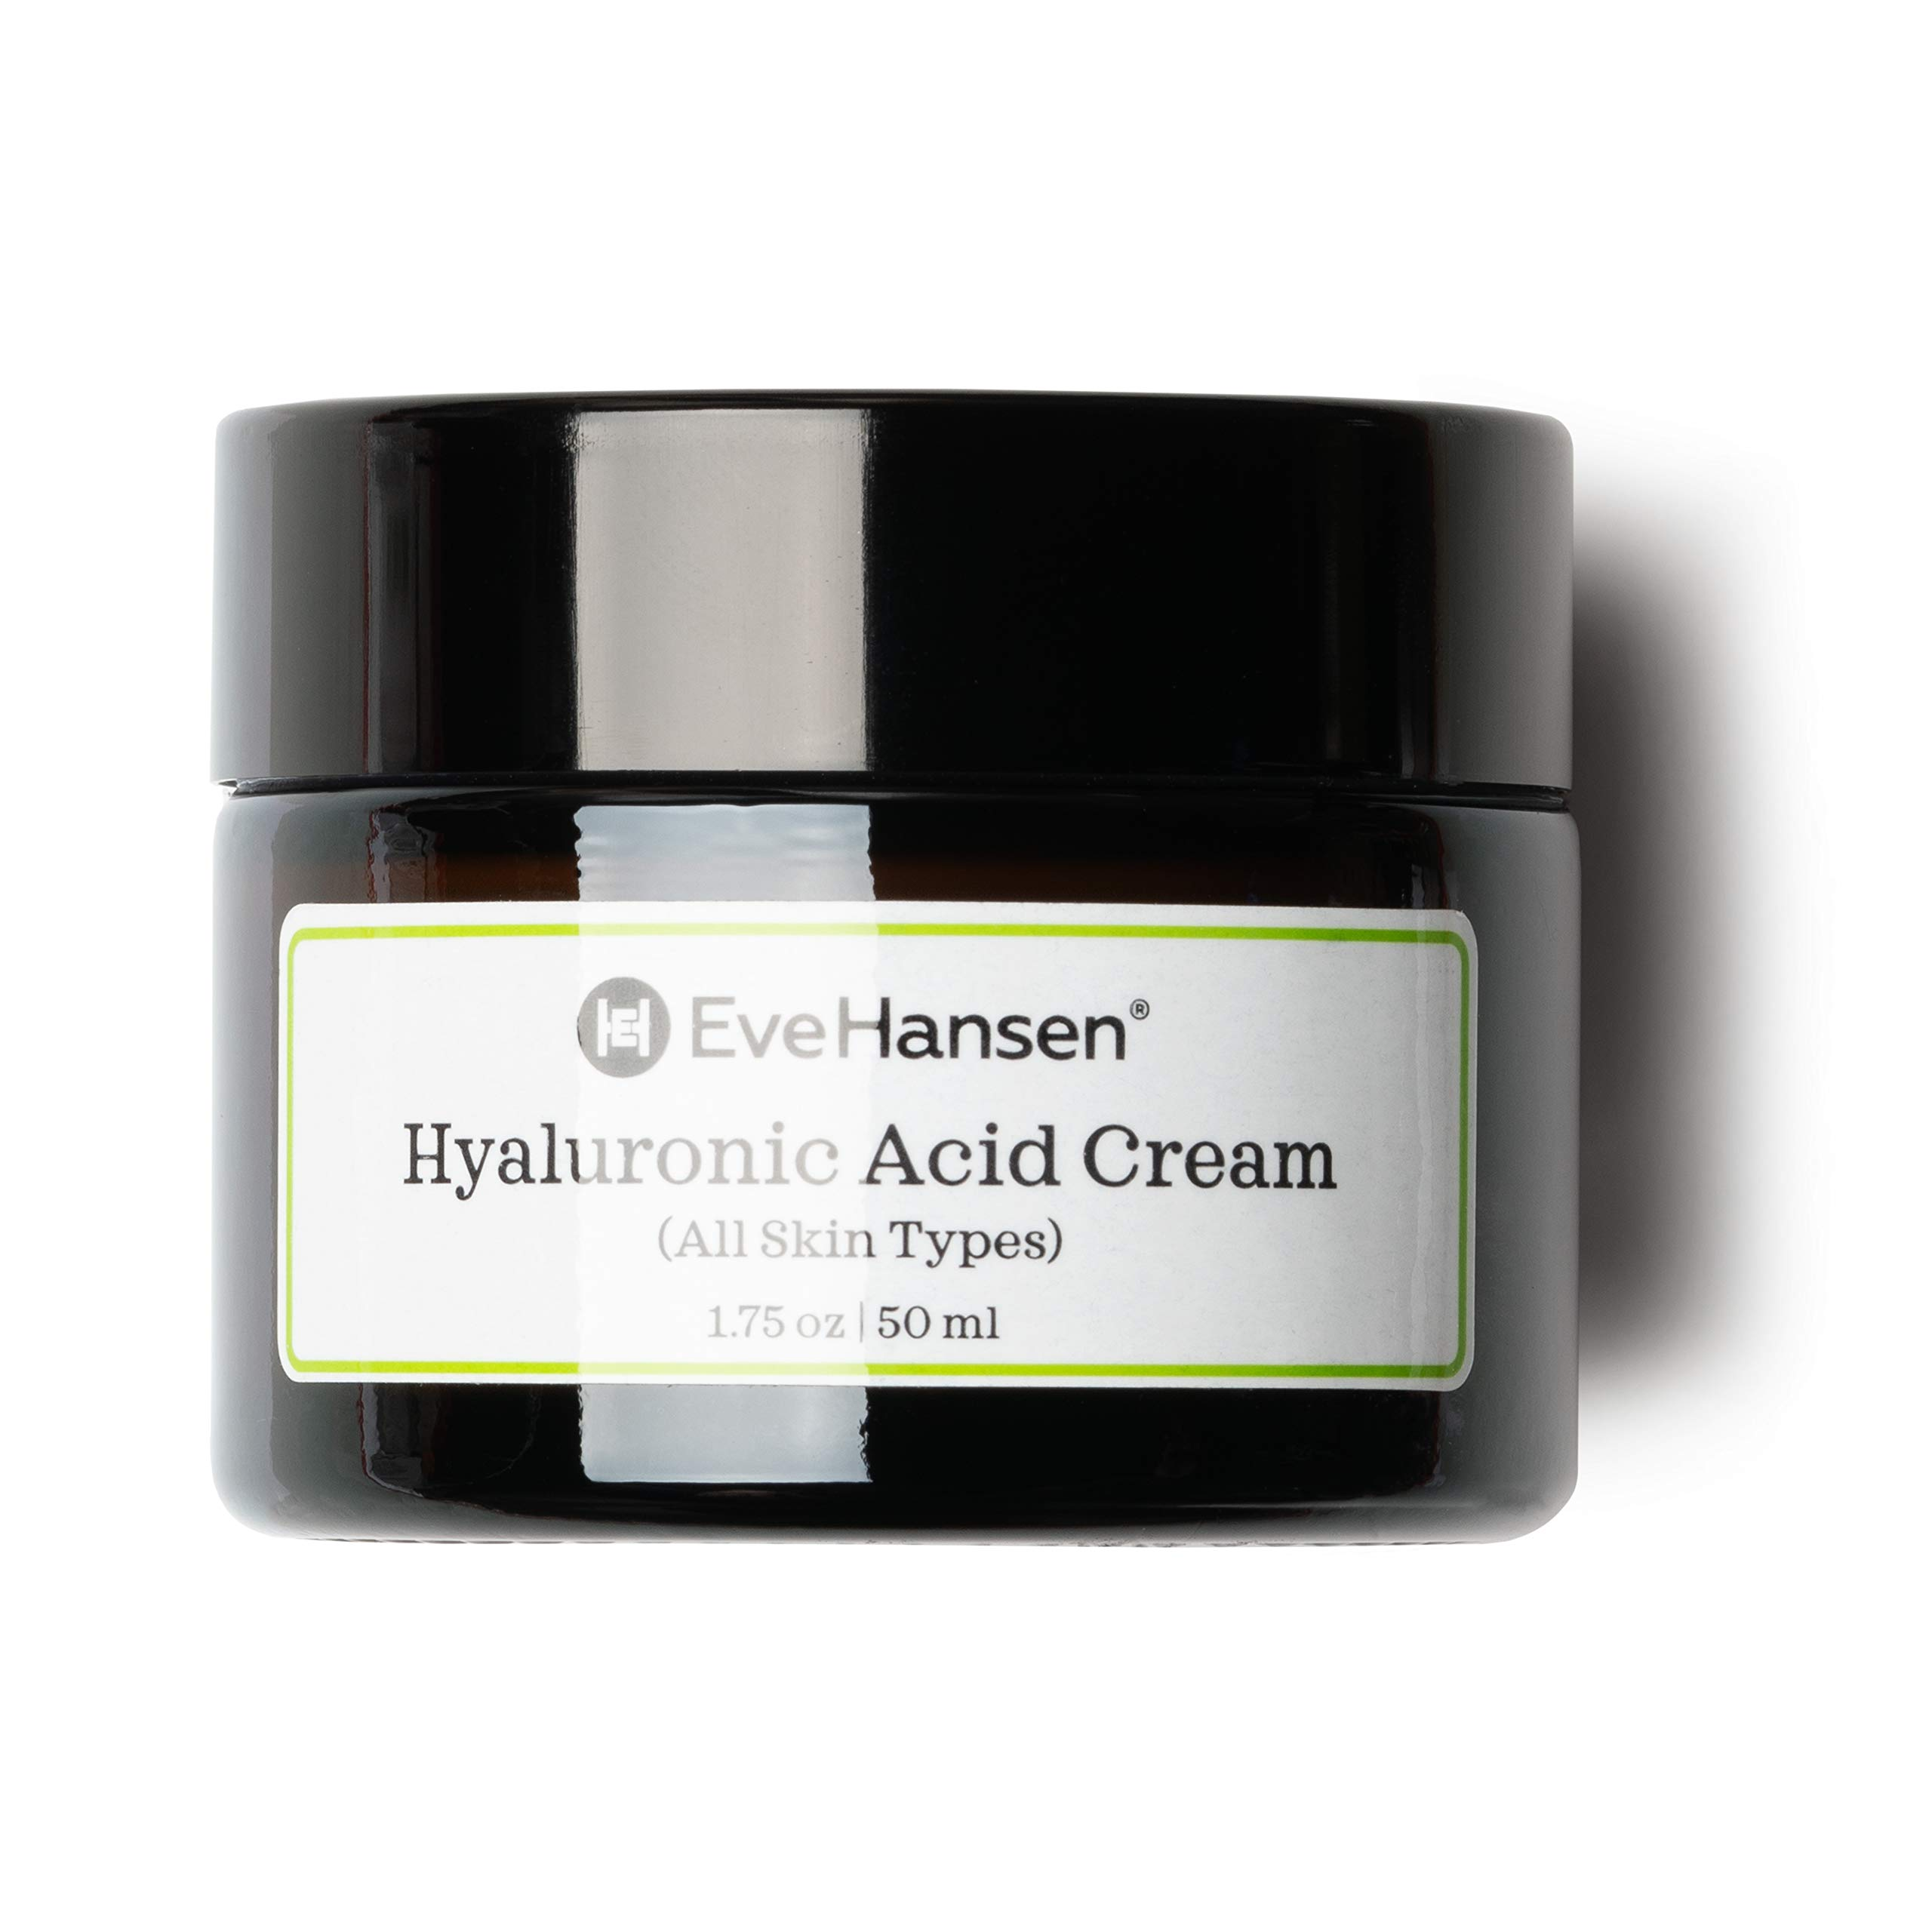 Eve Hansen Hyaluronic Acid Cream for Face | Natural Face Moisturizer, Neck Cream, Anti-Wrinkle Cream | Anti Aging Face Cream for Women, Mens Moisturizer for Face w/Organic Botanical Extracts 1.75oz